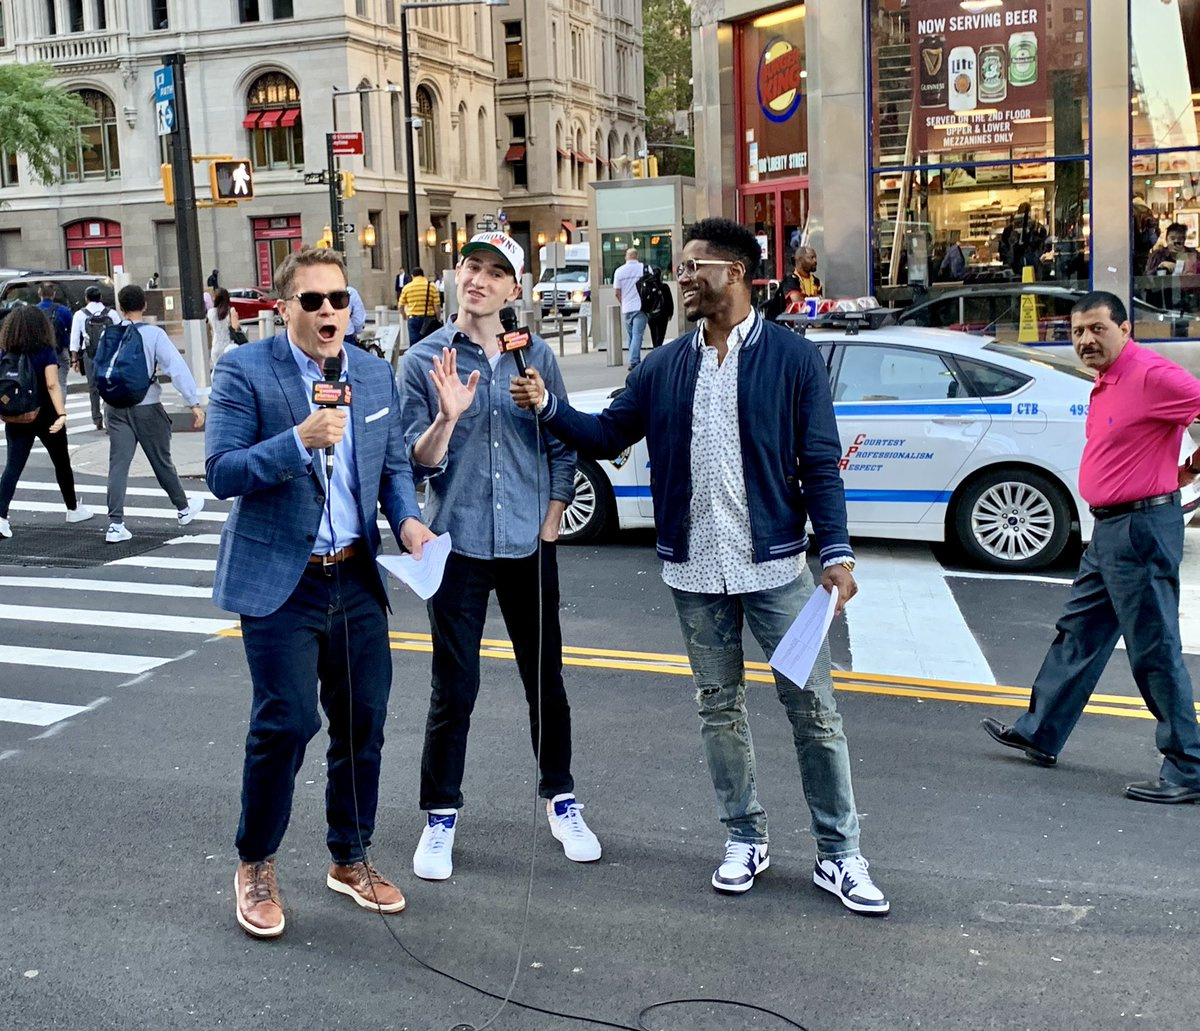 Think you can read @NFL highlights live on Tv with us?!?   This morning we went live from New York reading Streetlights with Nick from Cleveland • Huge @Browns fan.  Side note: my guy in the background is as cool as he wanna be 😏#OnlyInNewYork on @gmfb ✔️ https://t.co/hTaP9wbNaB